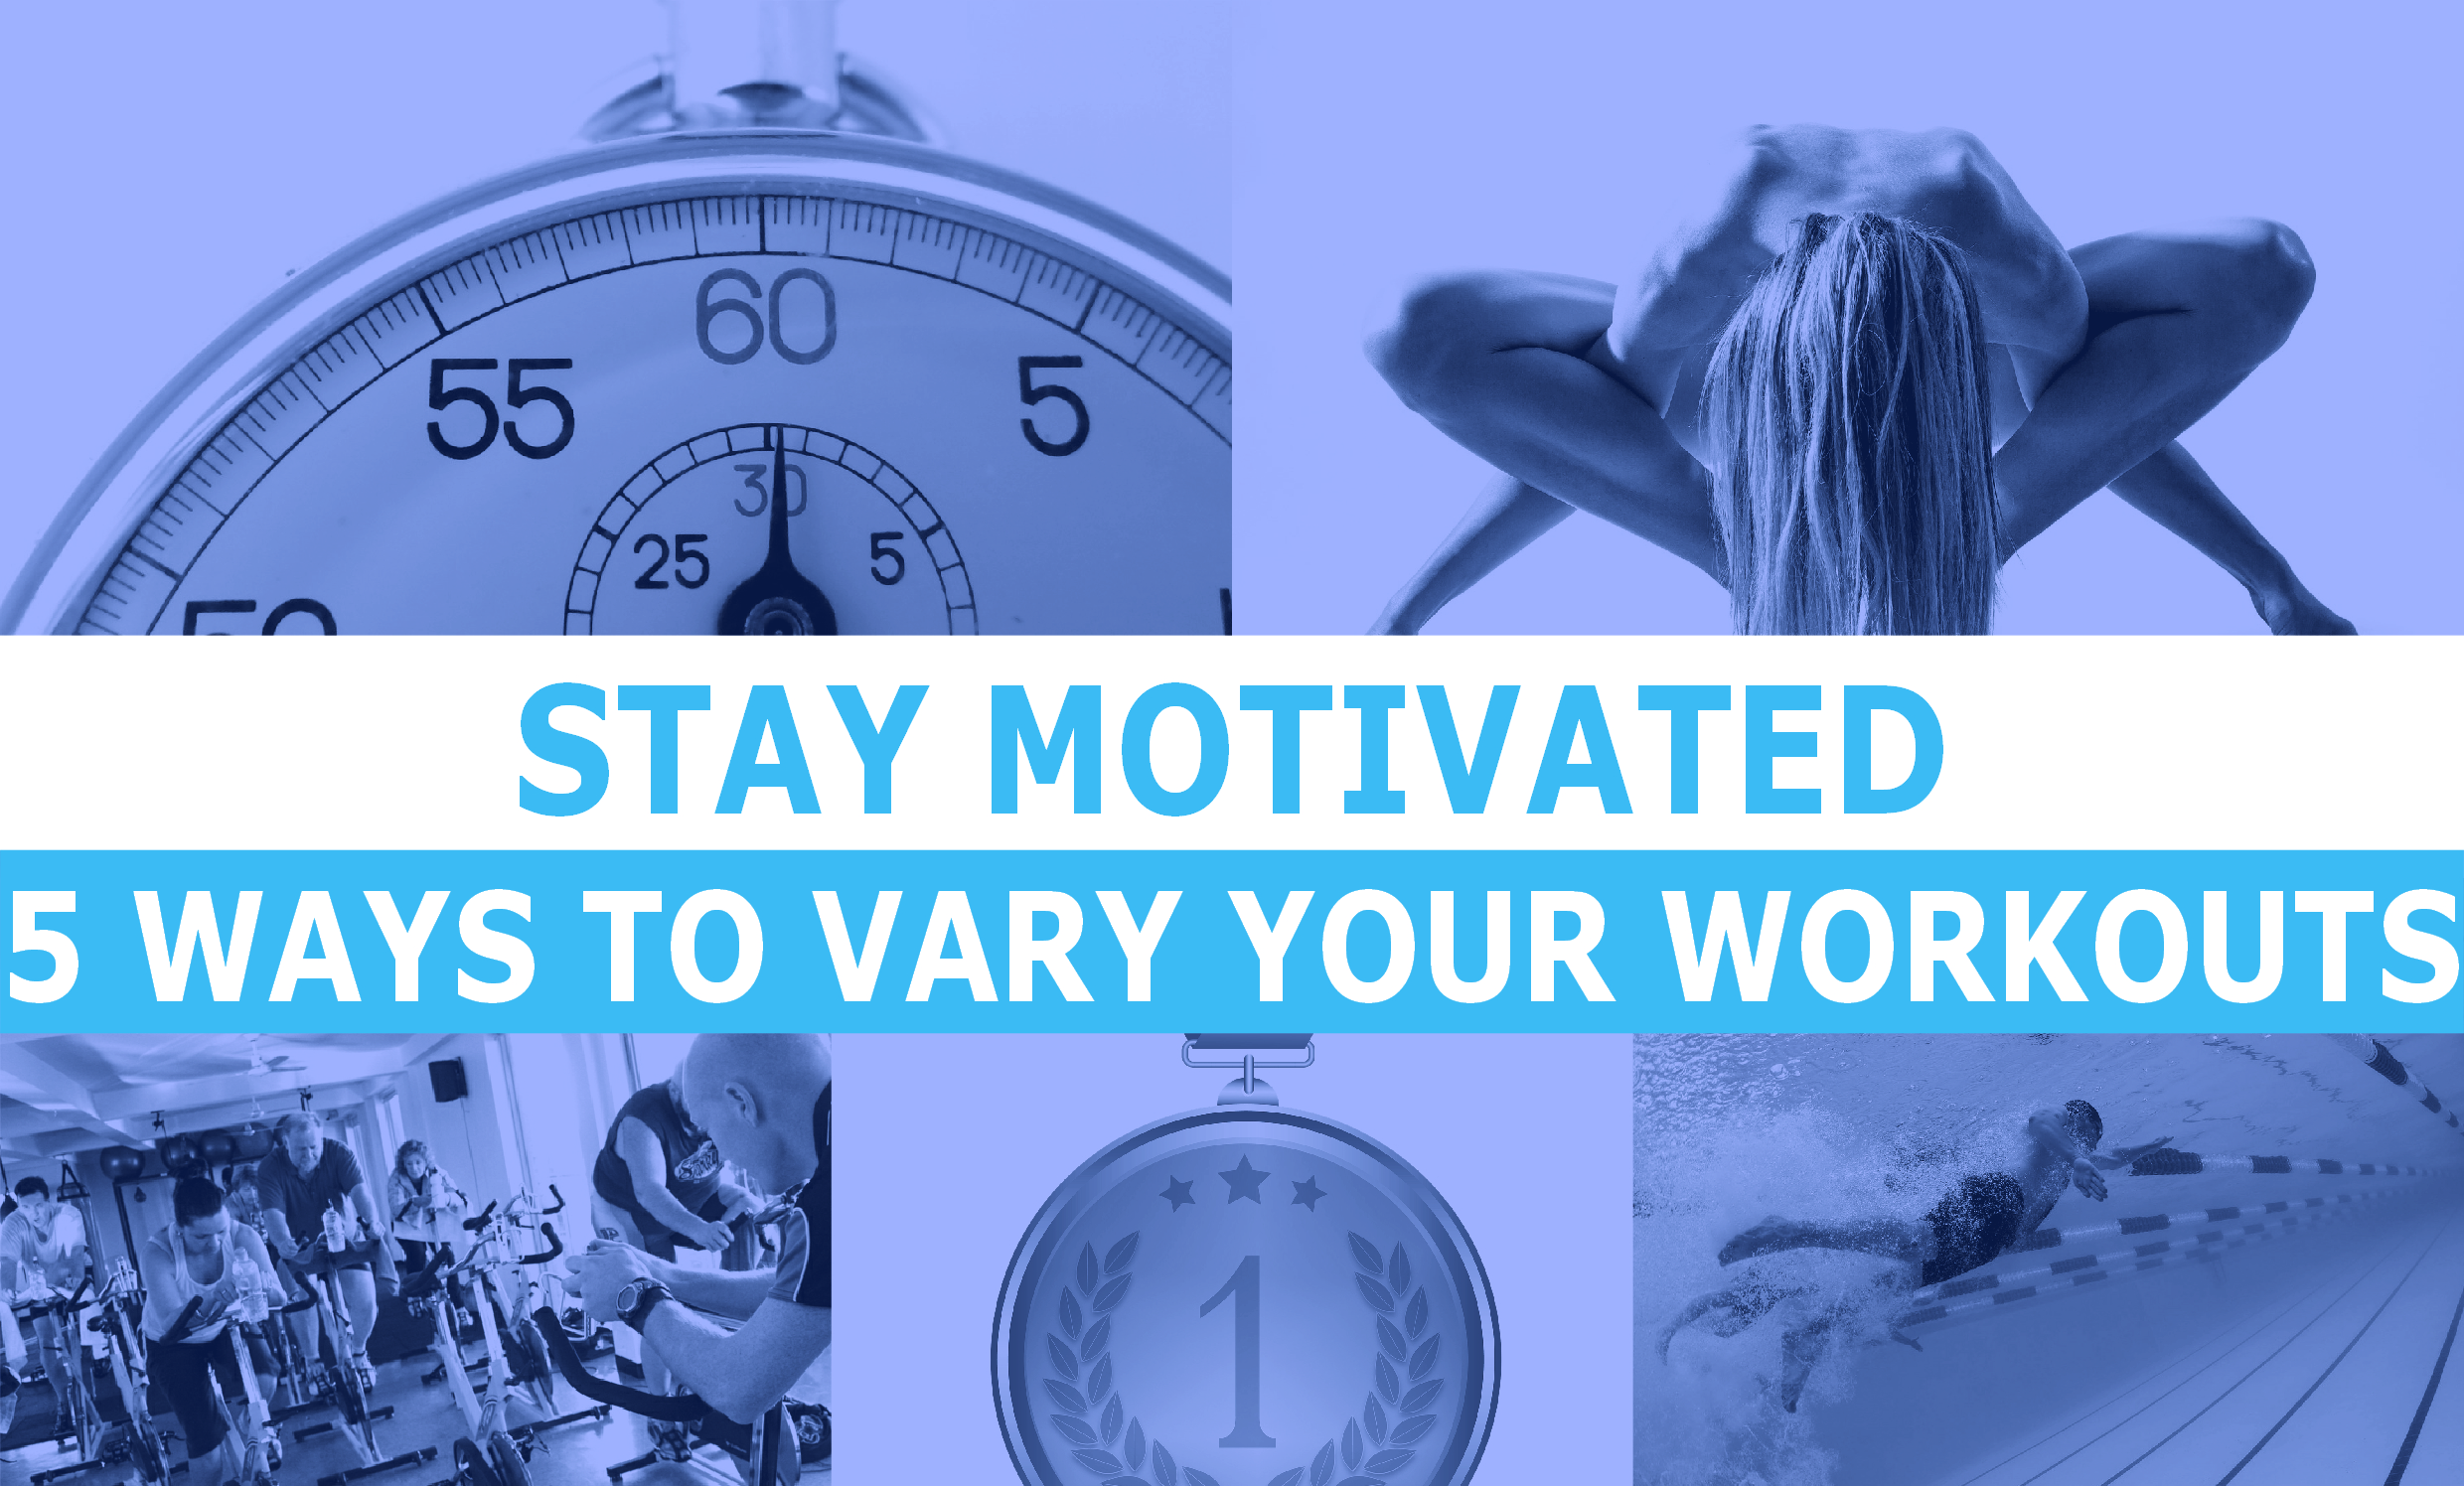 STAY MOTIVATED 5 WAYS TO VARY YOUR WORKOUTS